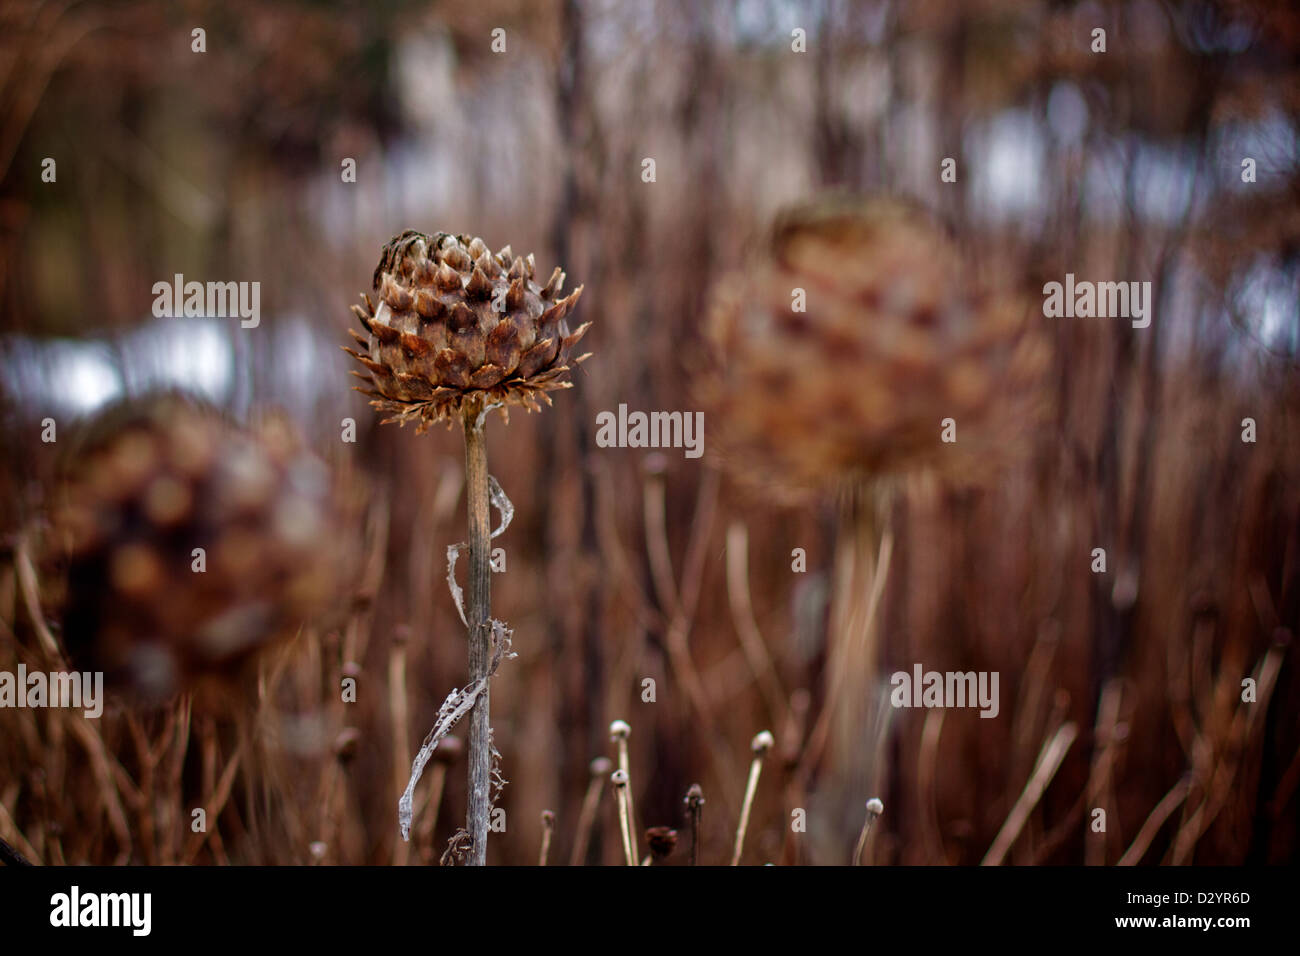 Part of a series of shots depicting winter flora at Ness Gardens, Wirral, Merseyside, England, UK - Stock Image